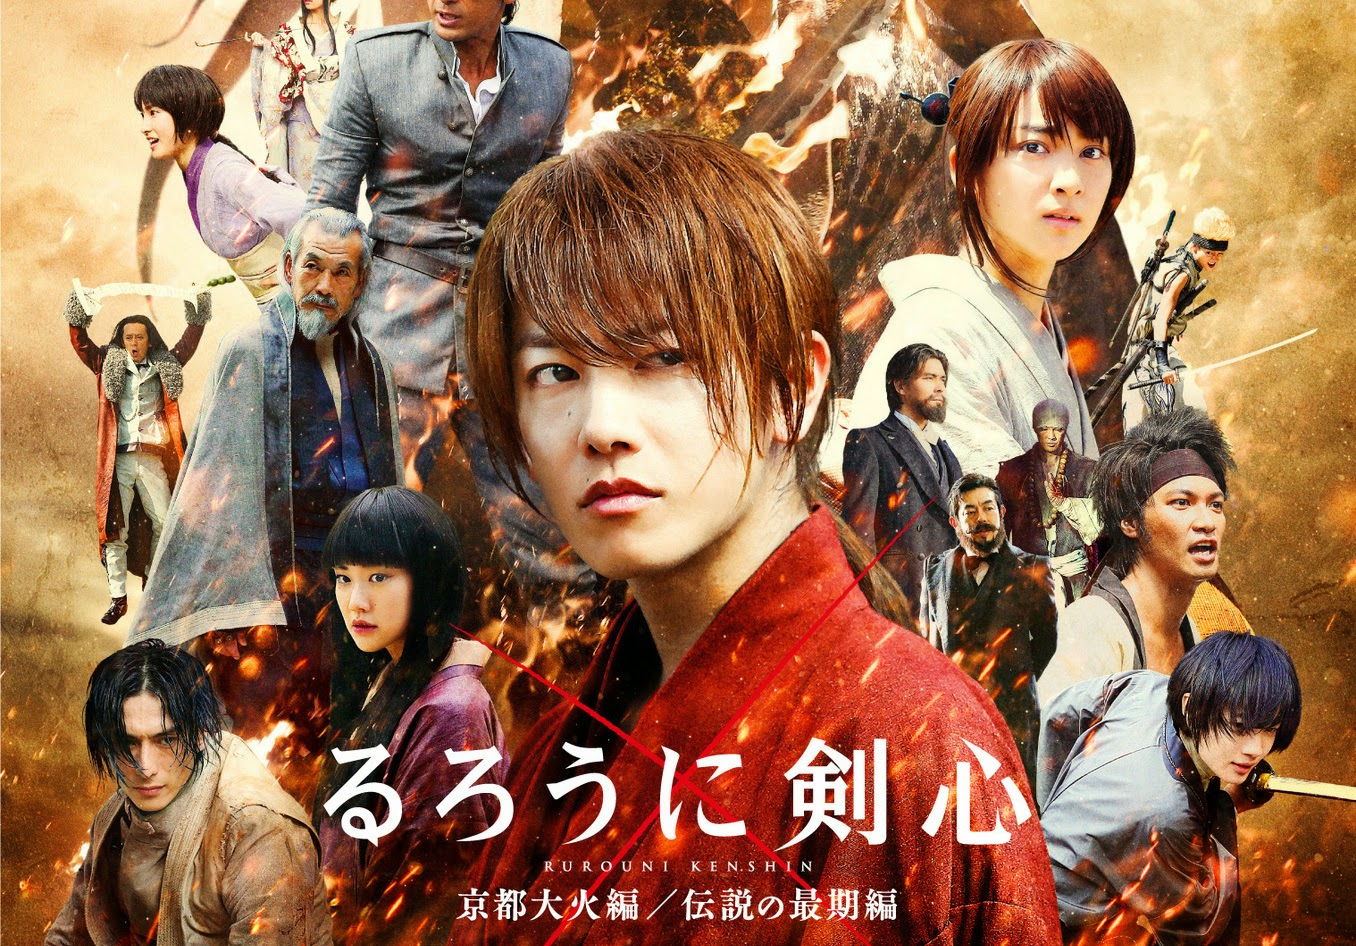 Rurouni Kenshin: Kyoto Inferno - Final Preview